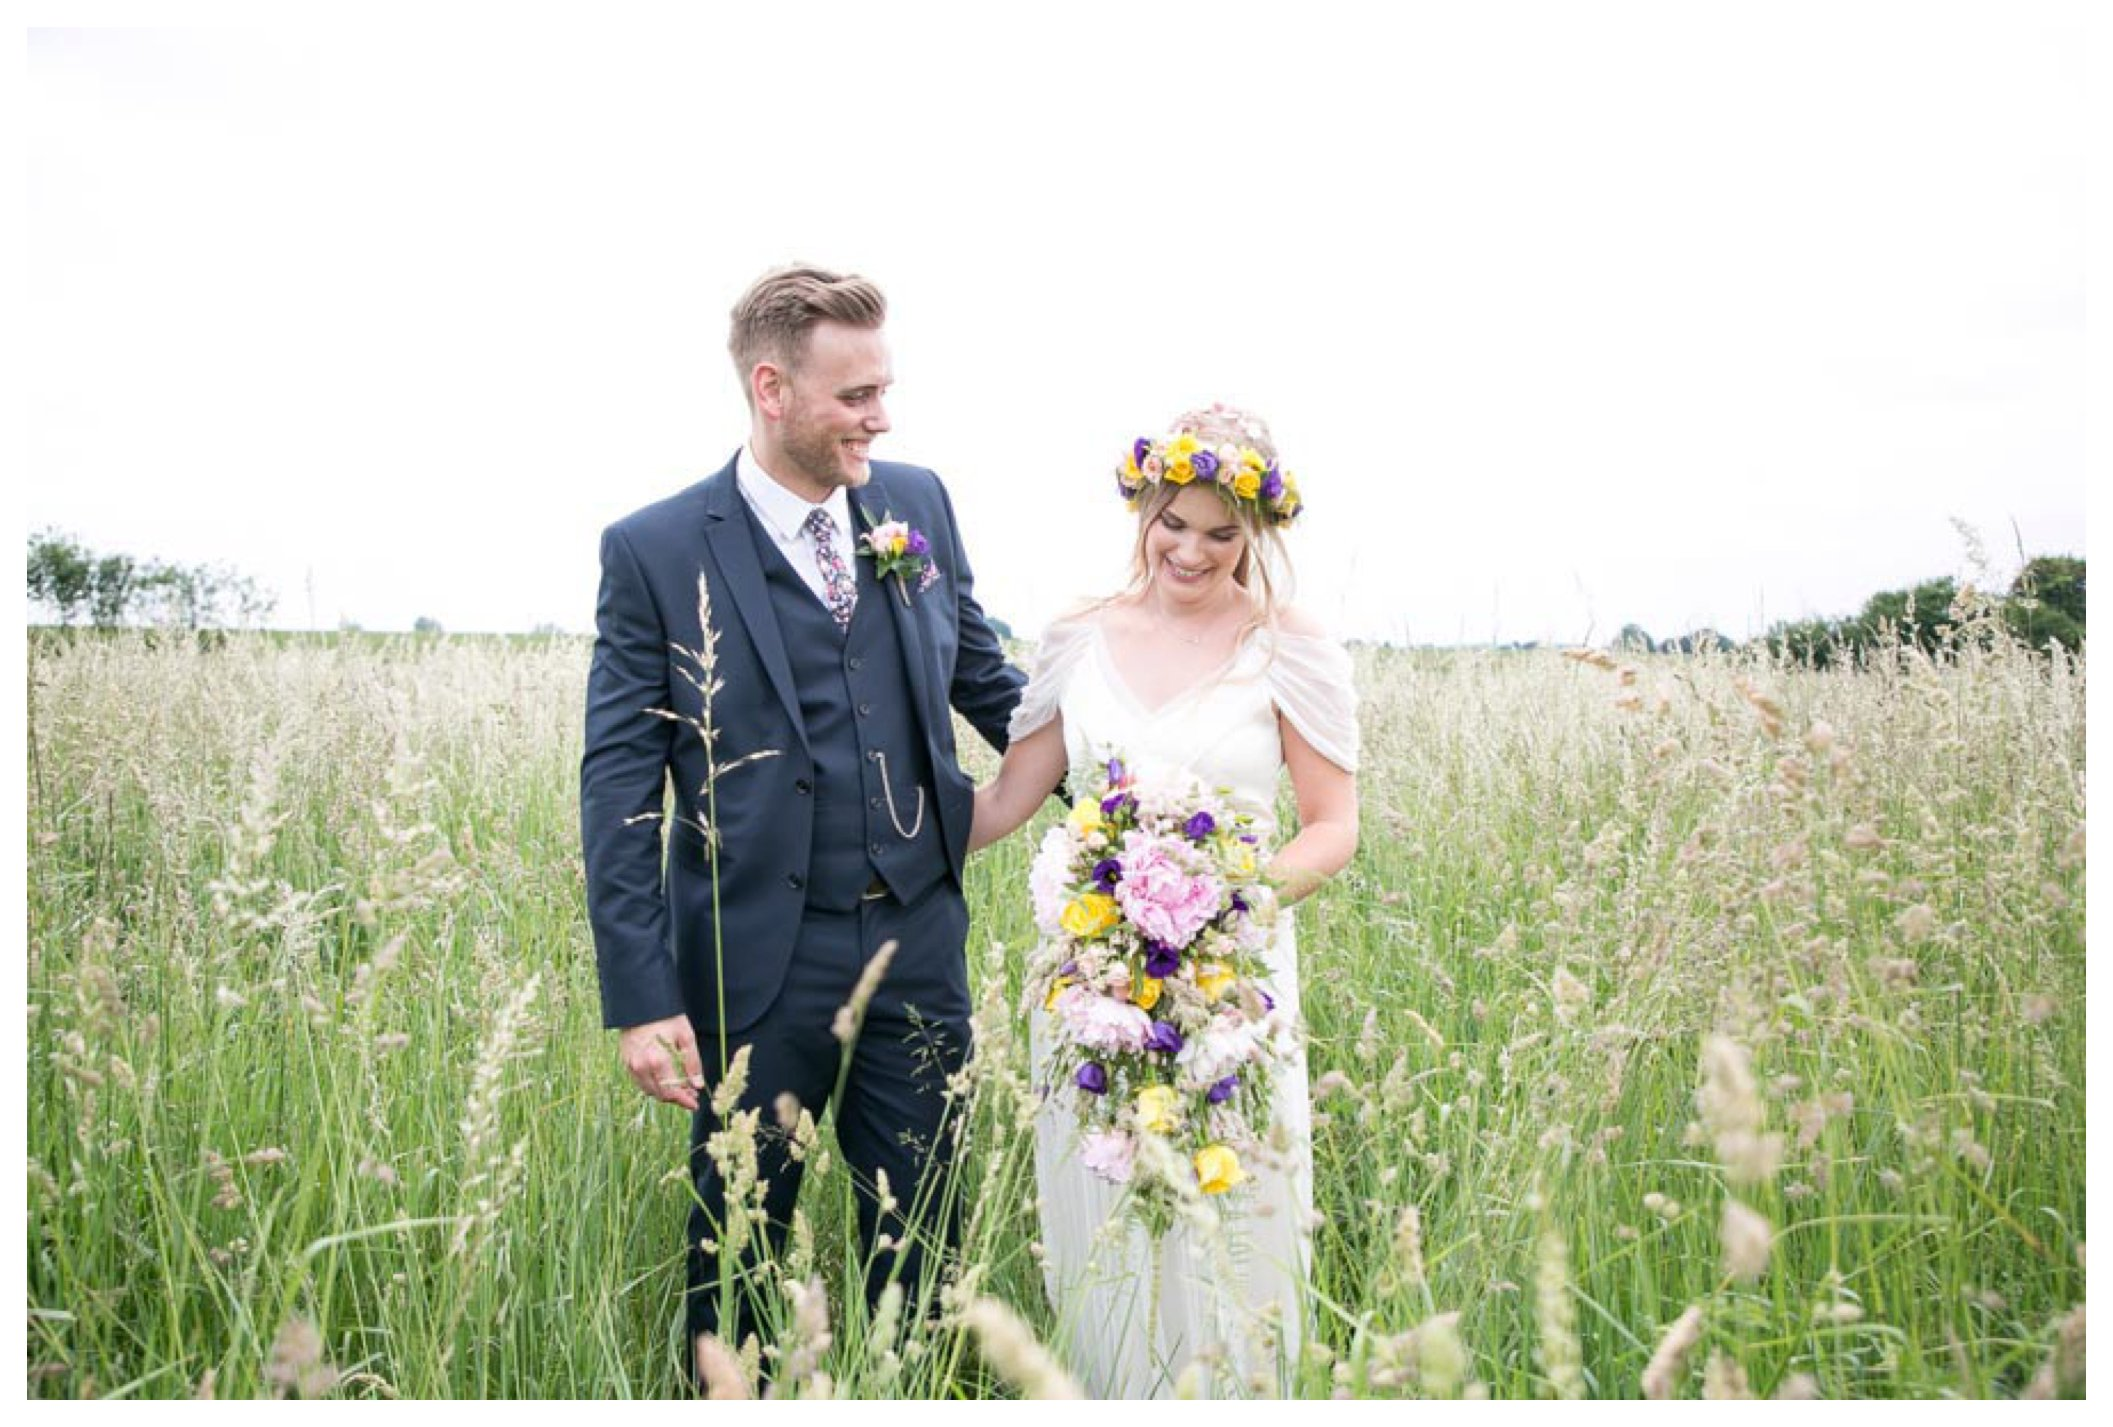 laughing bride and groom in corn field, bride with flower crown, reid Rooms wedding